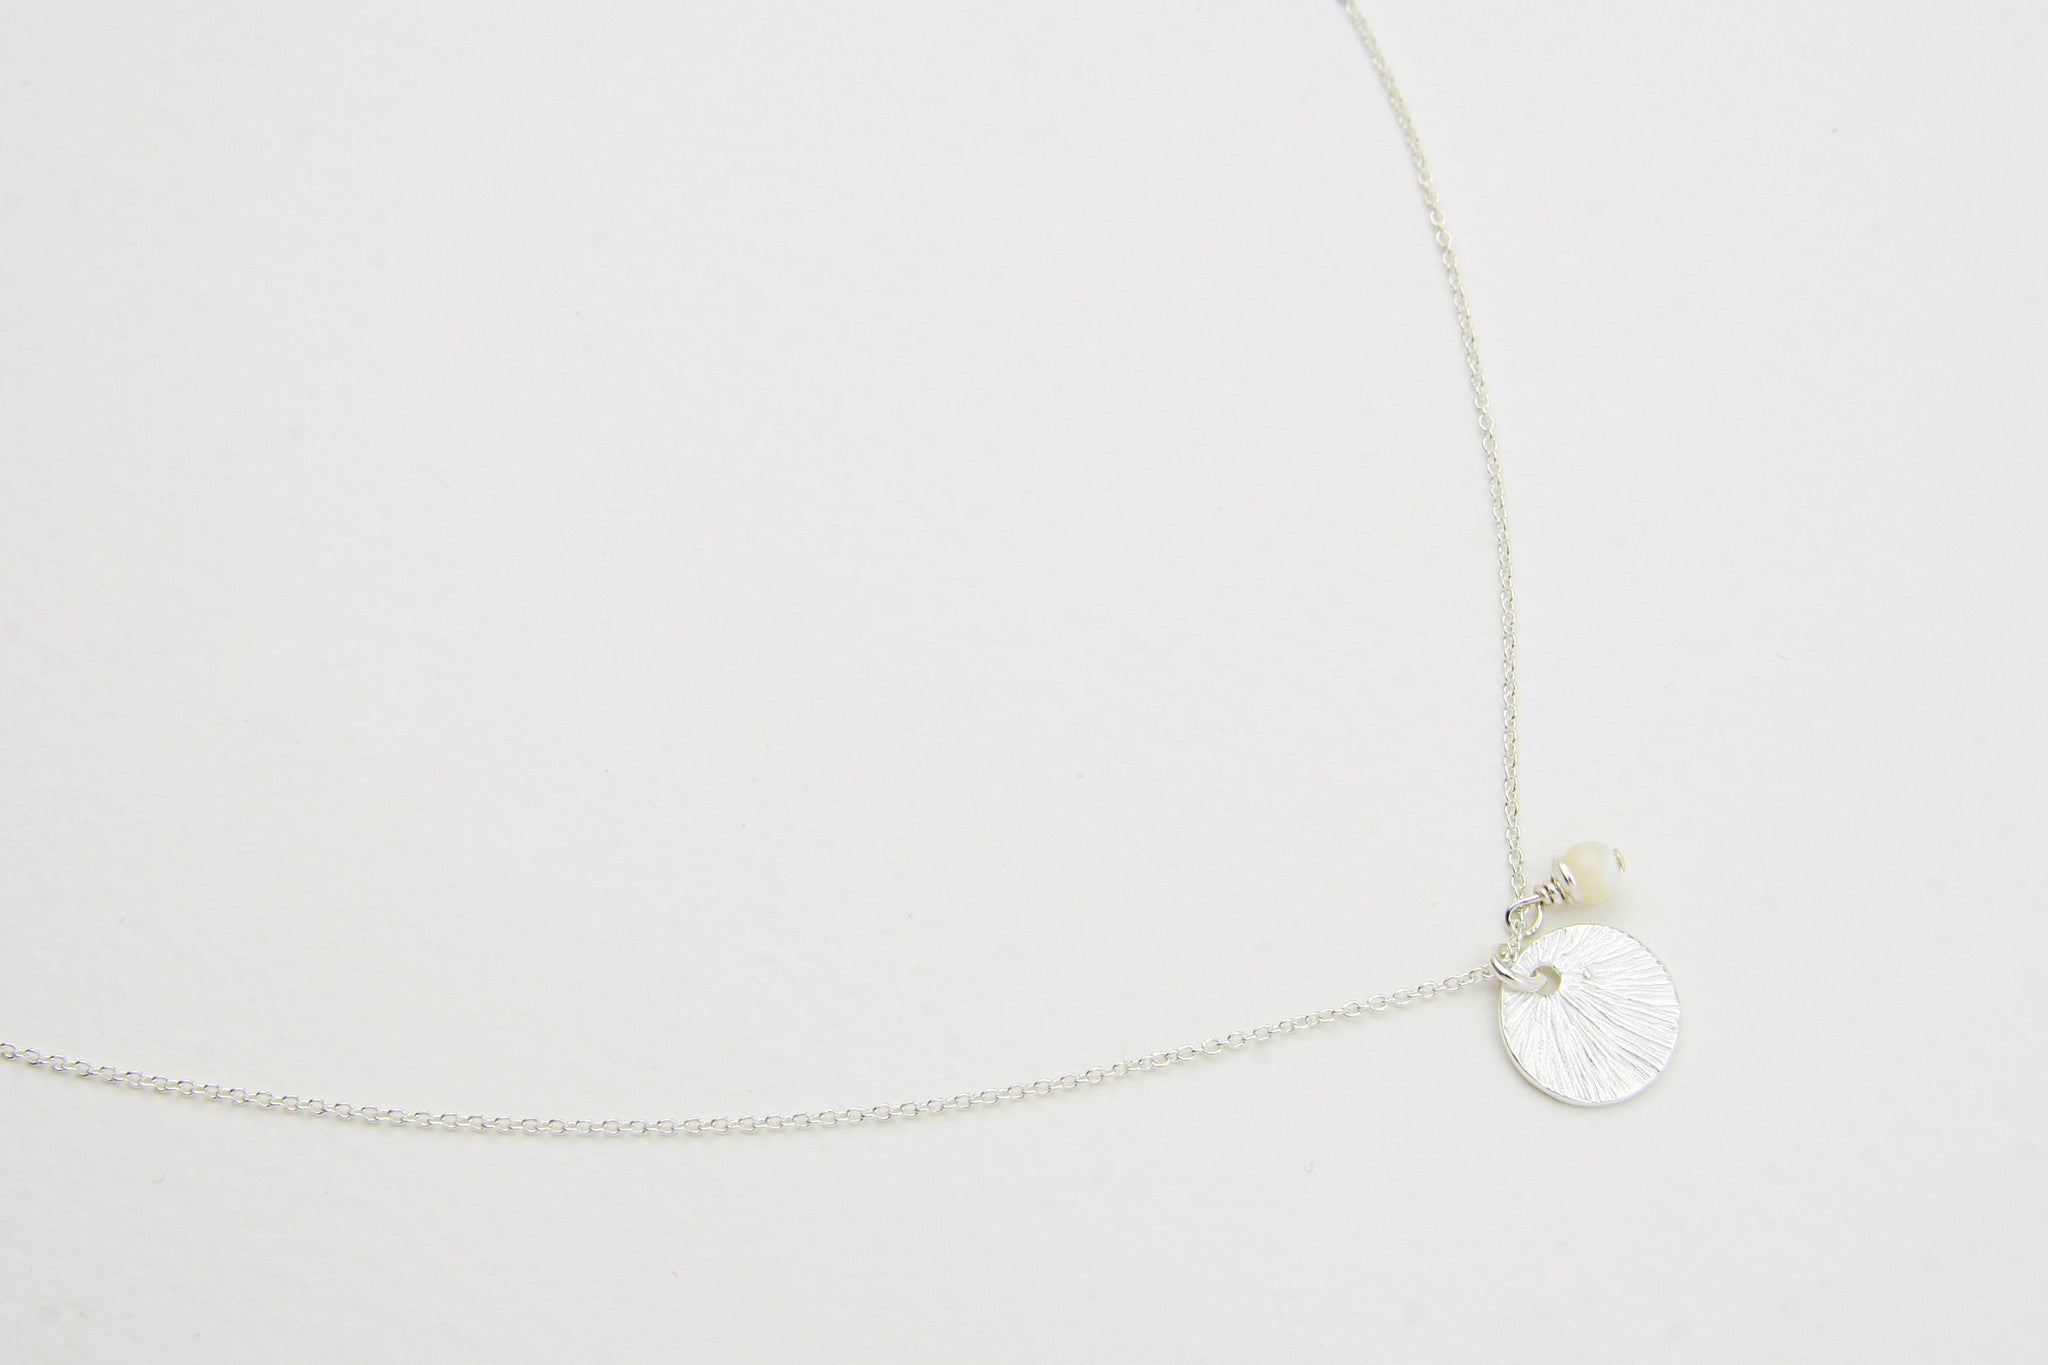 Kette SMALL SHELL 925 Sterling Silber